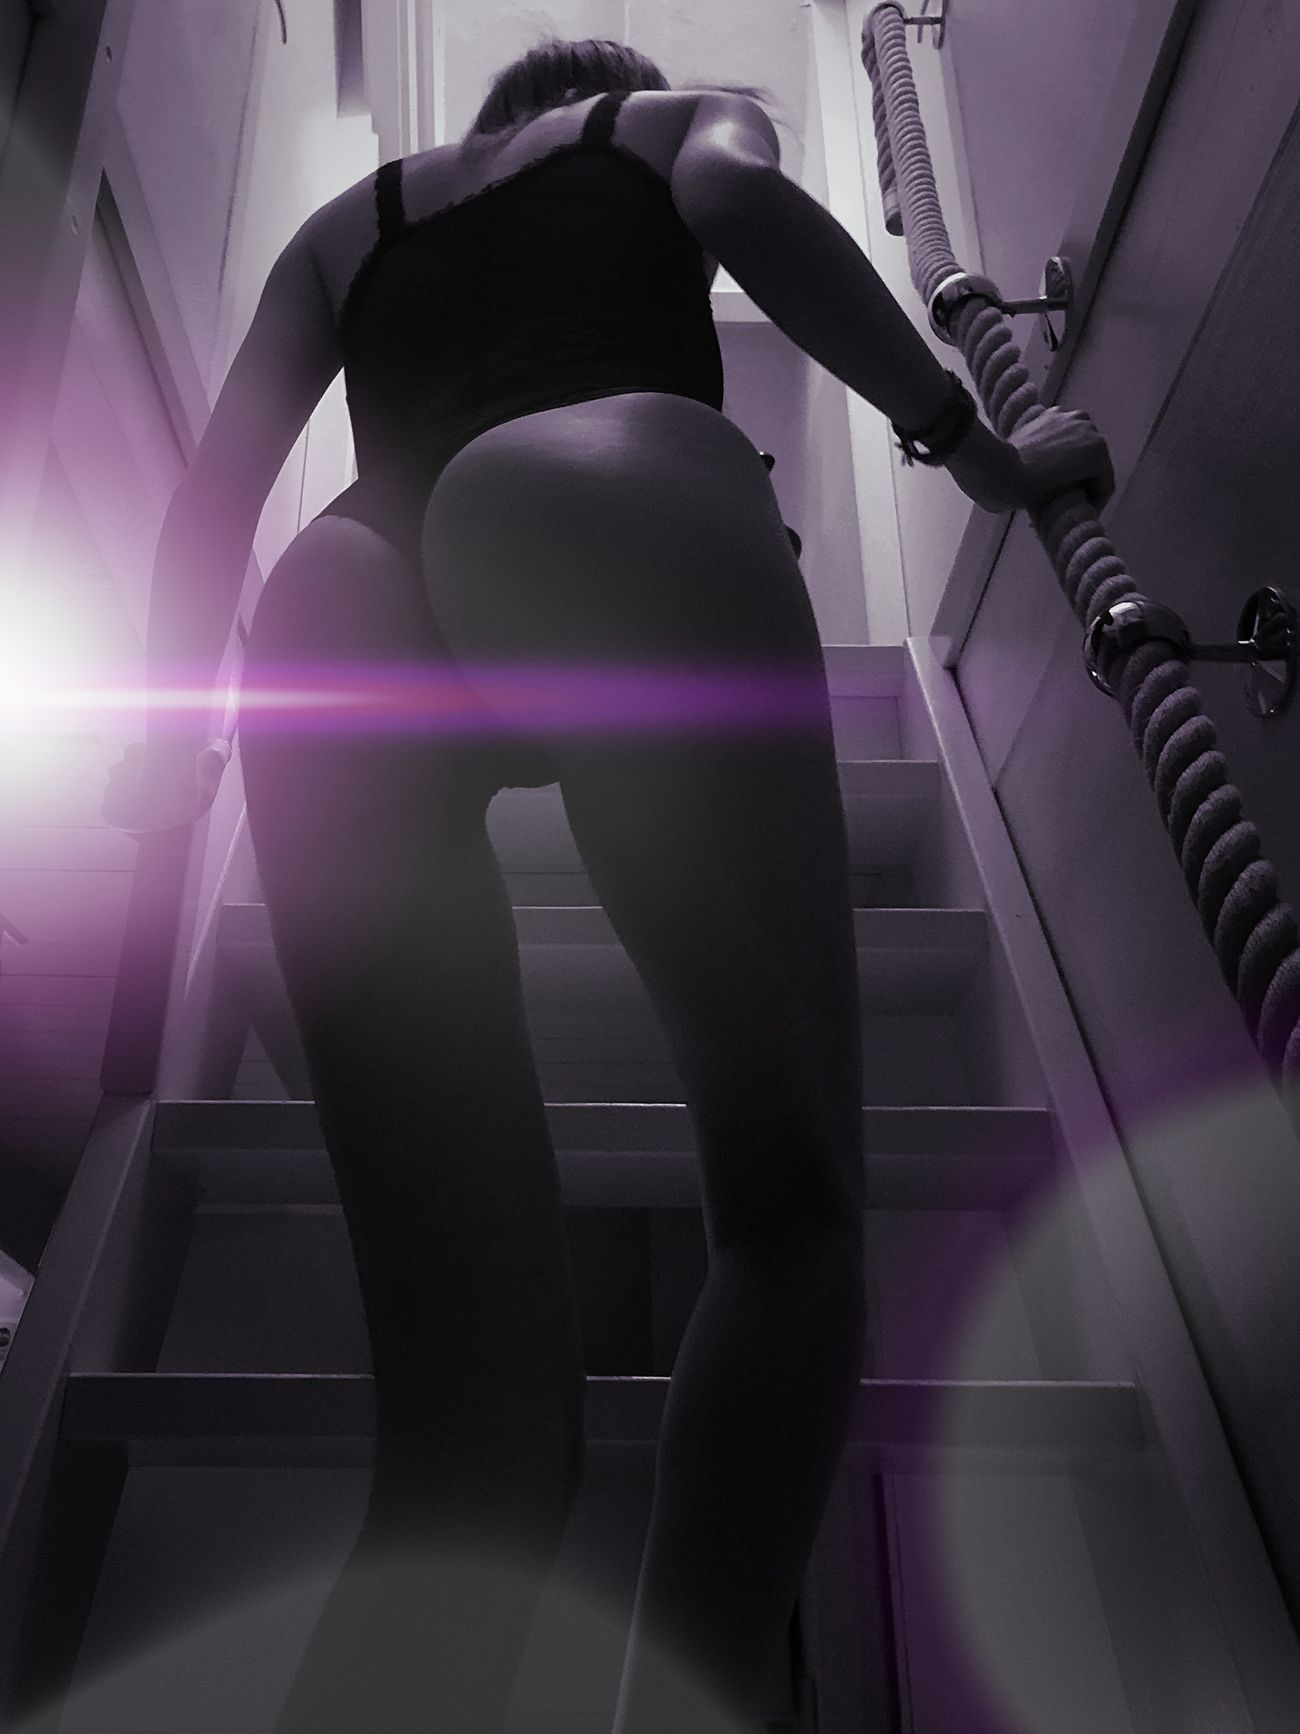 The Female Form Stairs Perfection Lina Modeling Seduction